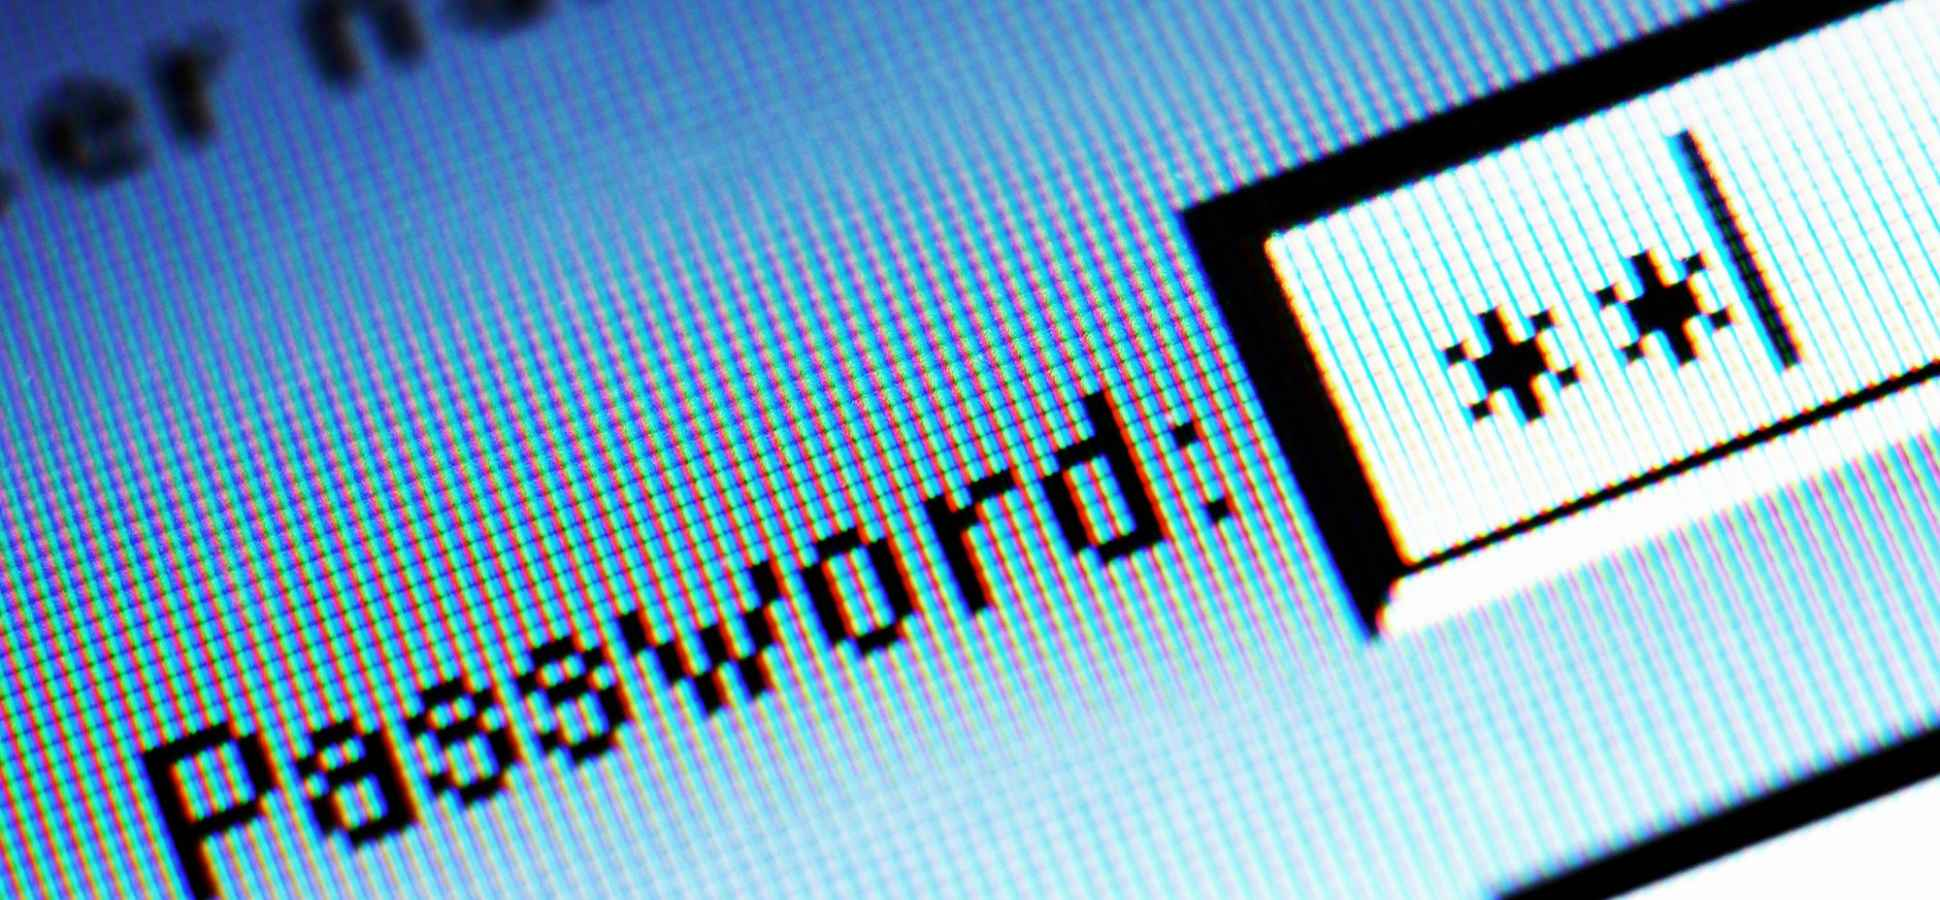 Security Flaw in LastPass Could Let Hackers Wage 'Unique and Highly Sophisticated' Attack to Steal Passwords